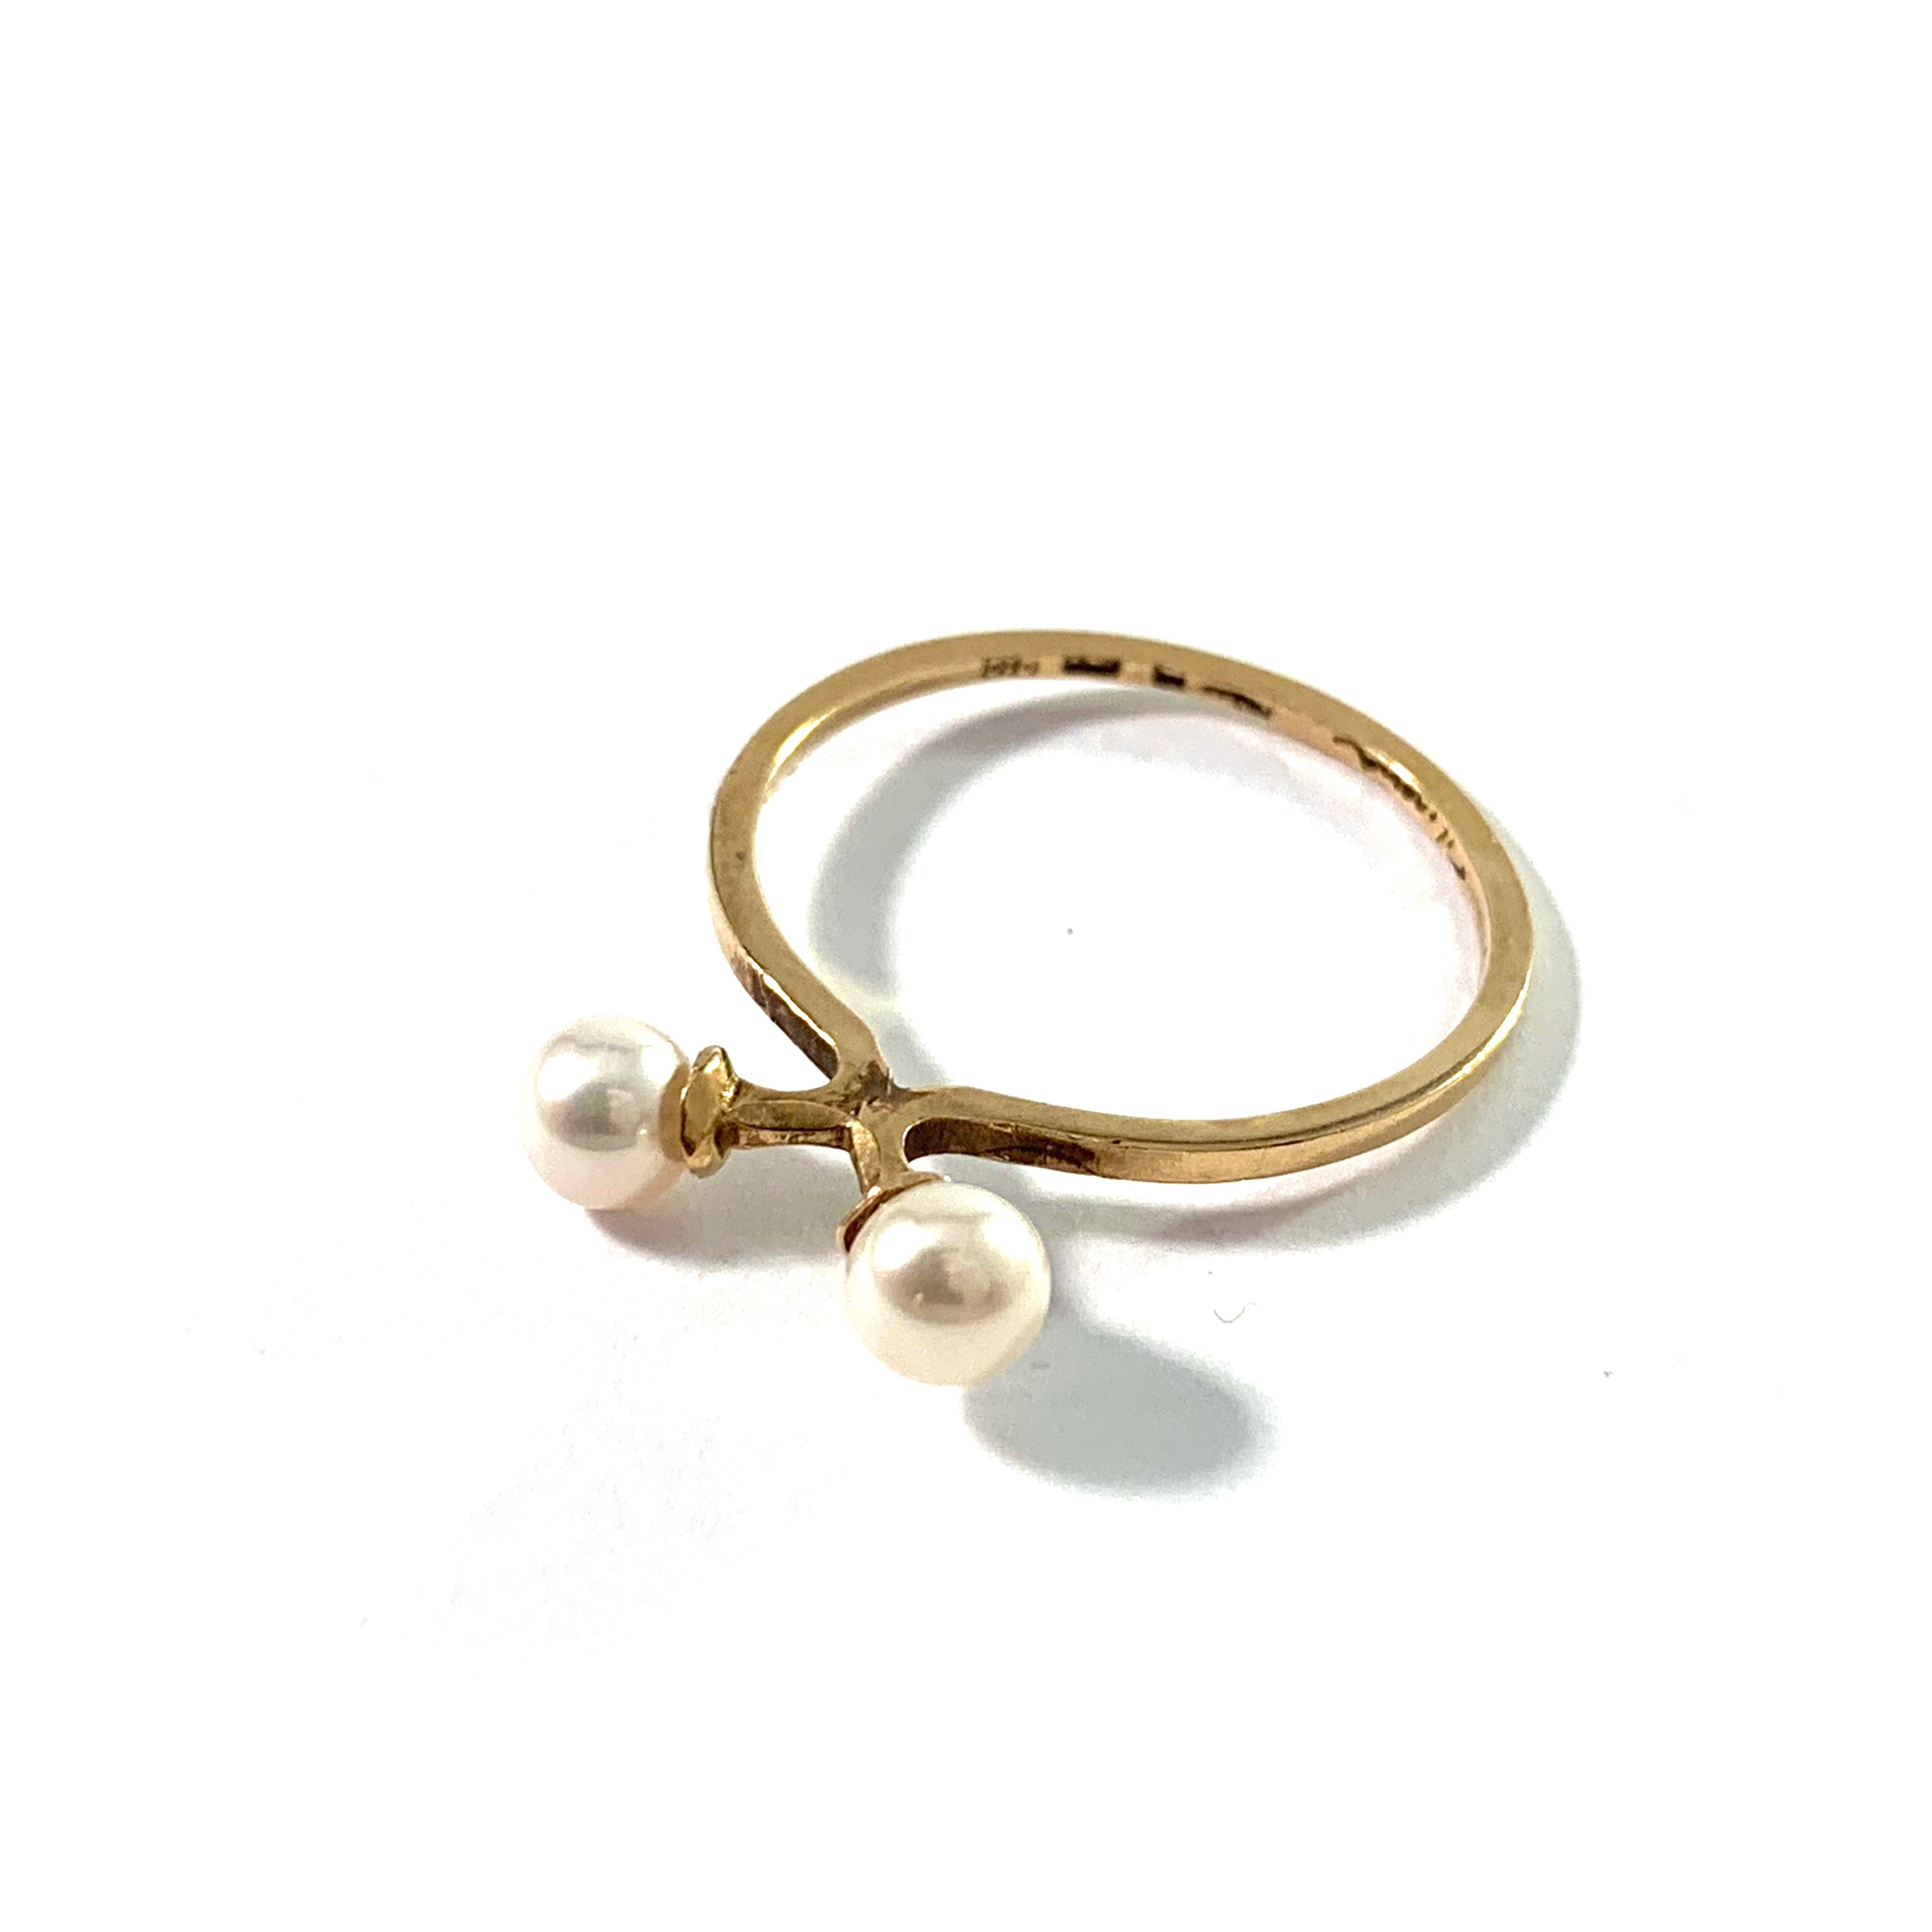 "Theresia Hvorslev, Sweden. Vintage 18k Gold Cultured Pearl Stack Ring. ""The Tale Of The Ring"""